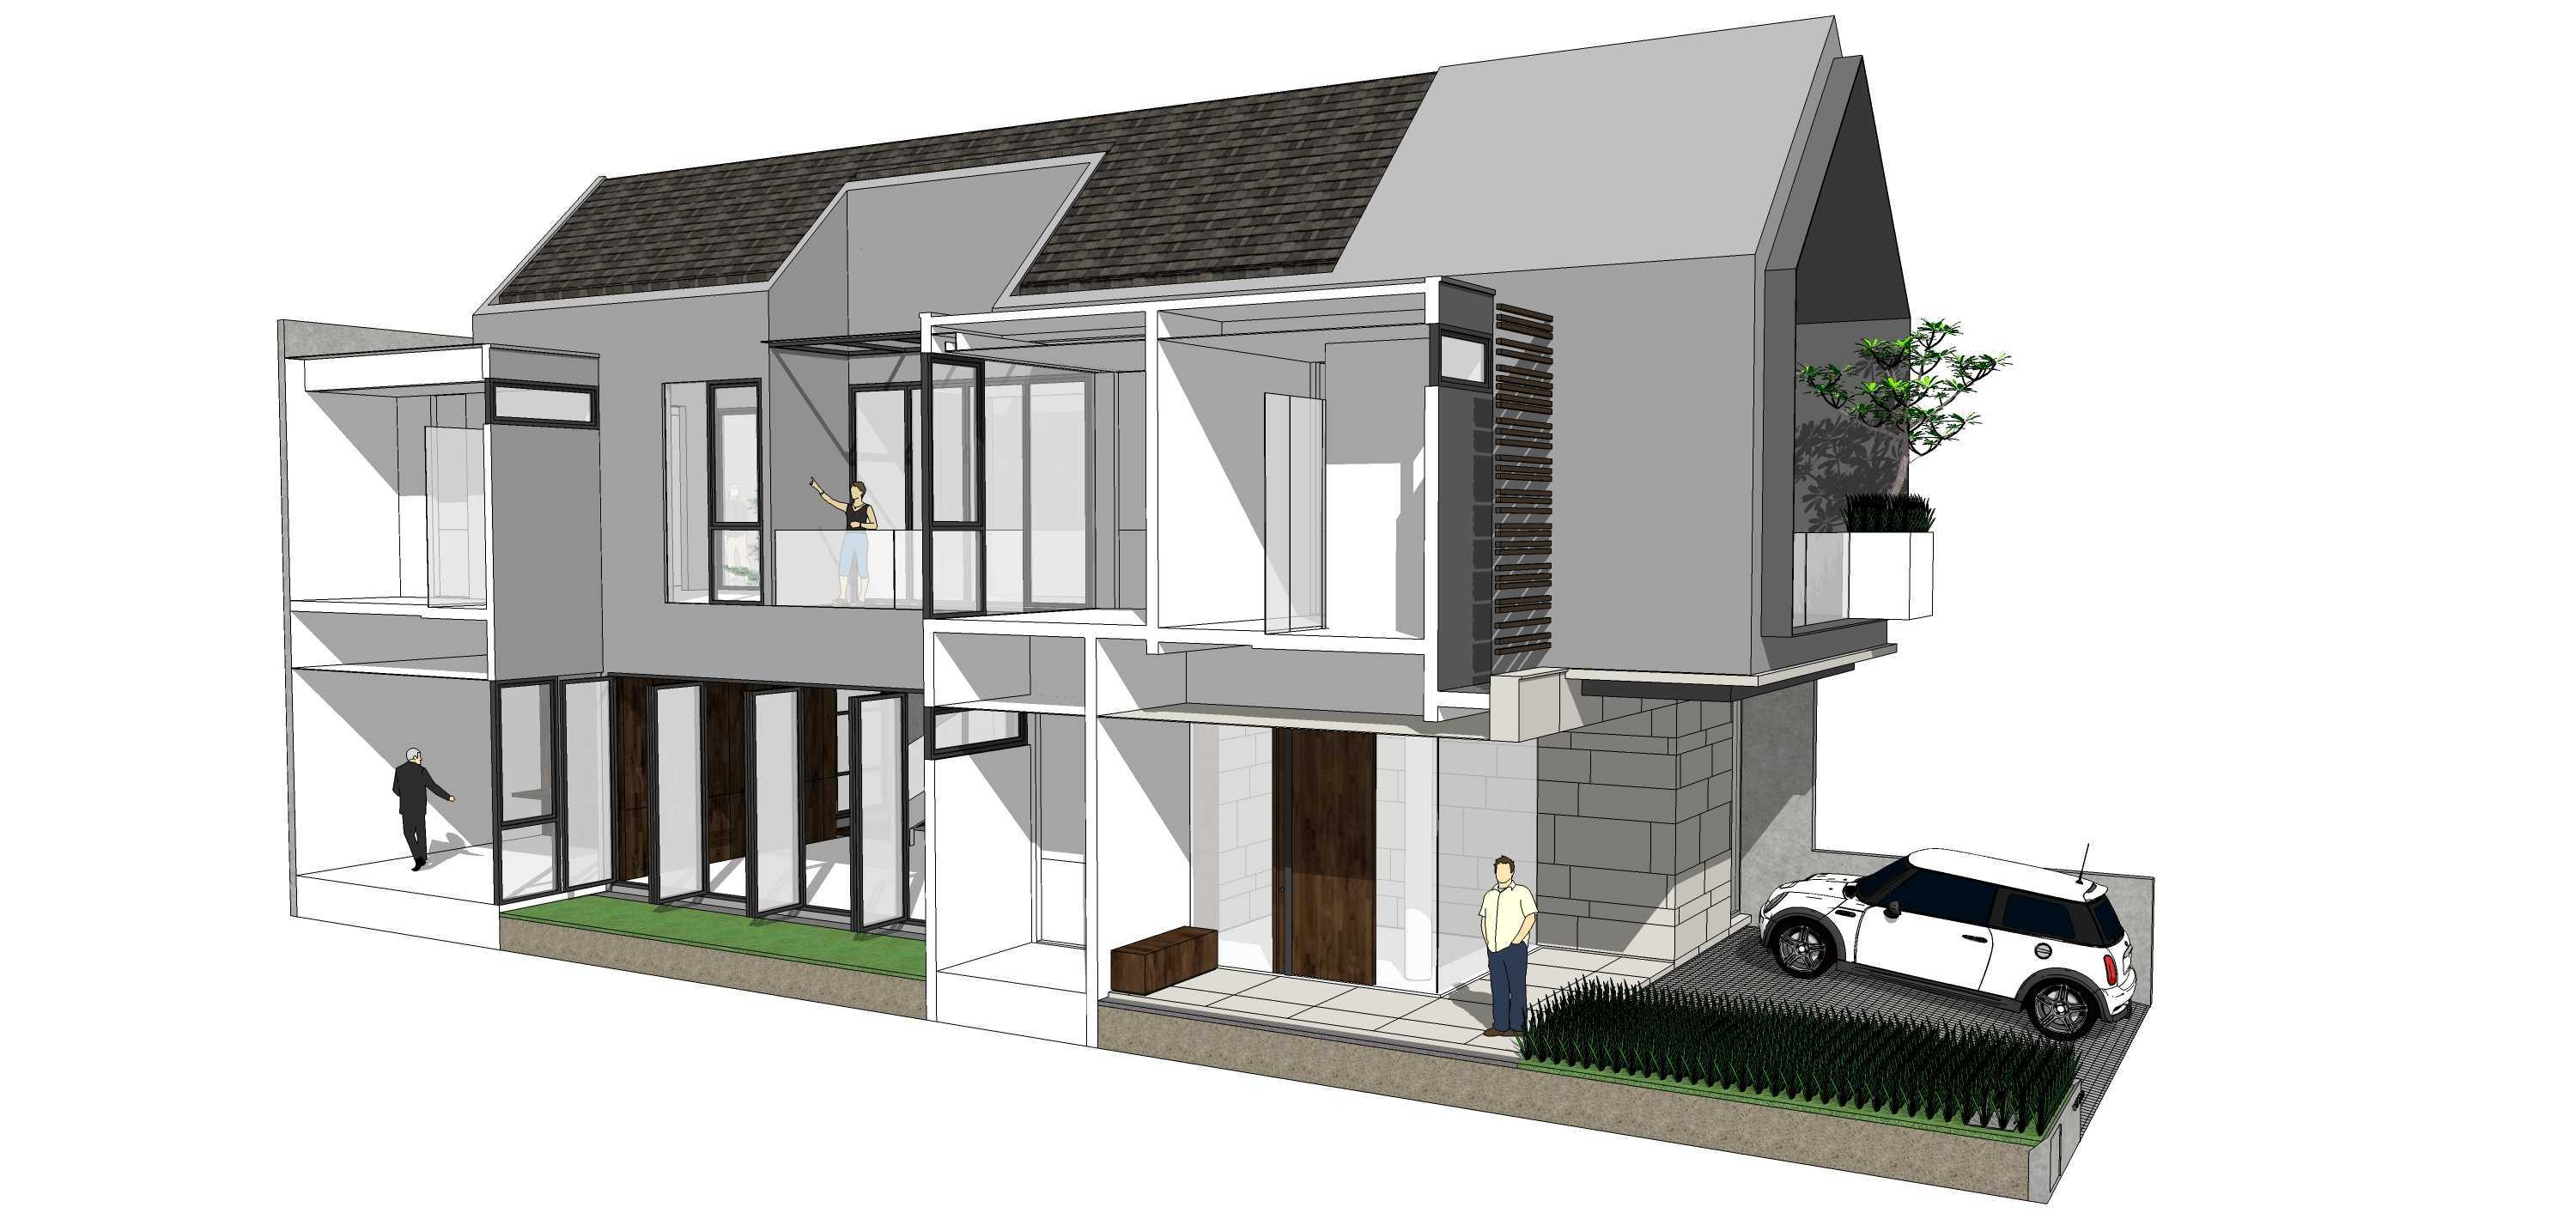 Simple Projects Architecture 'hhh' House Surabaya, Kota Sby, Jawa Timur, Indonesia  Simple-Projects-Architecture-Hhh-House   75098